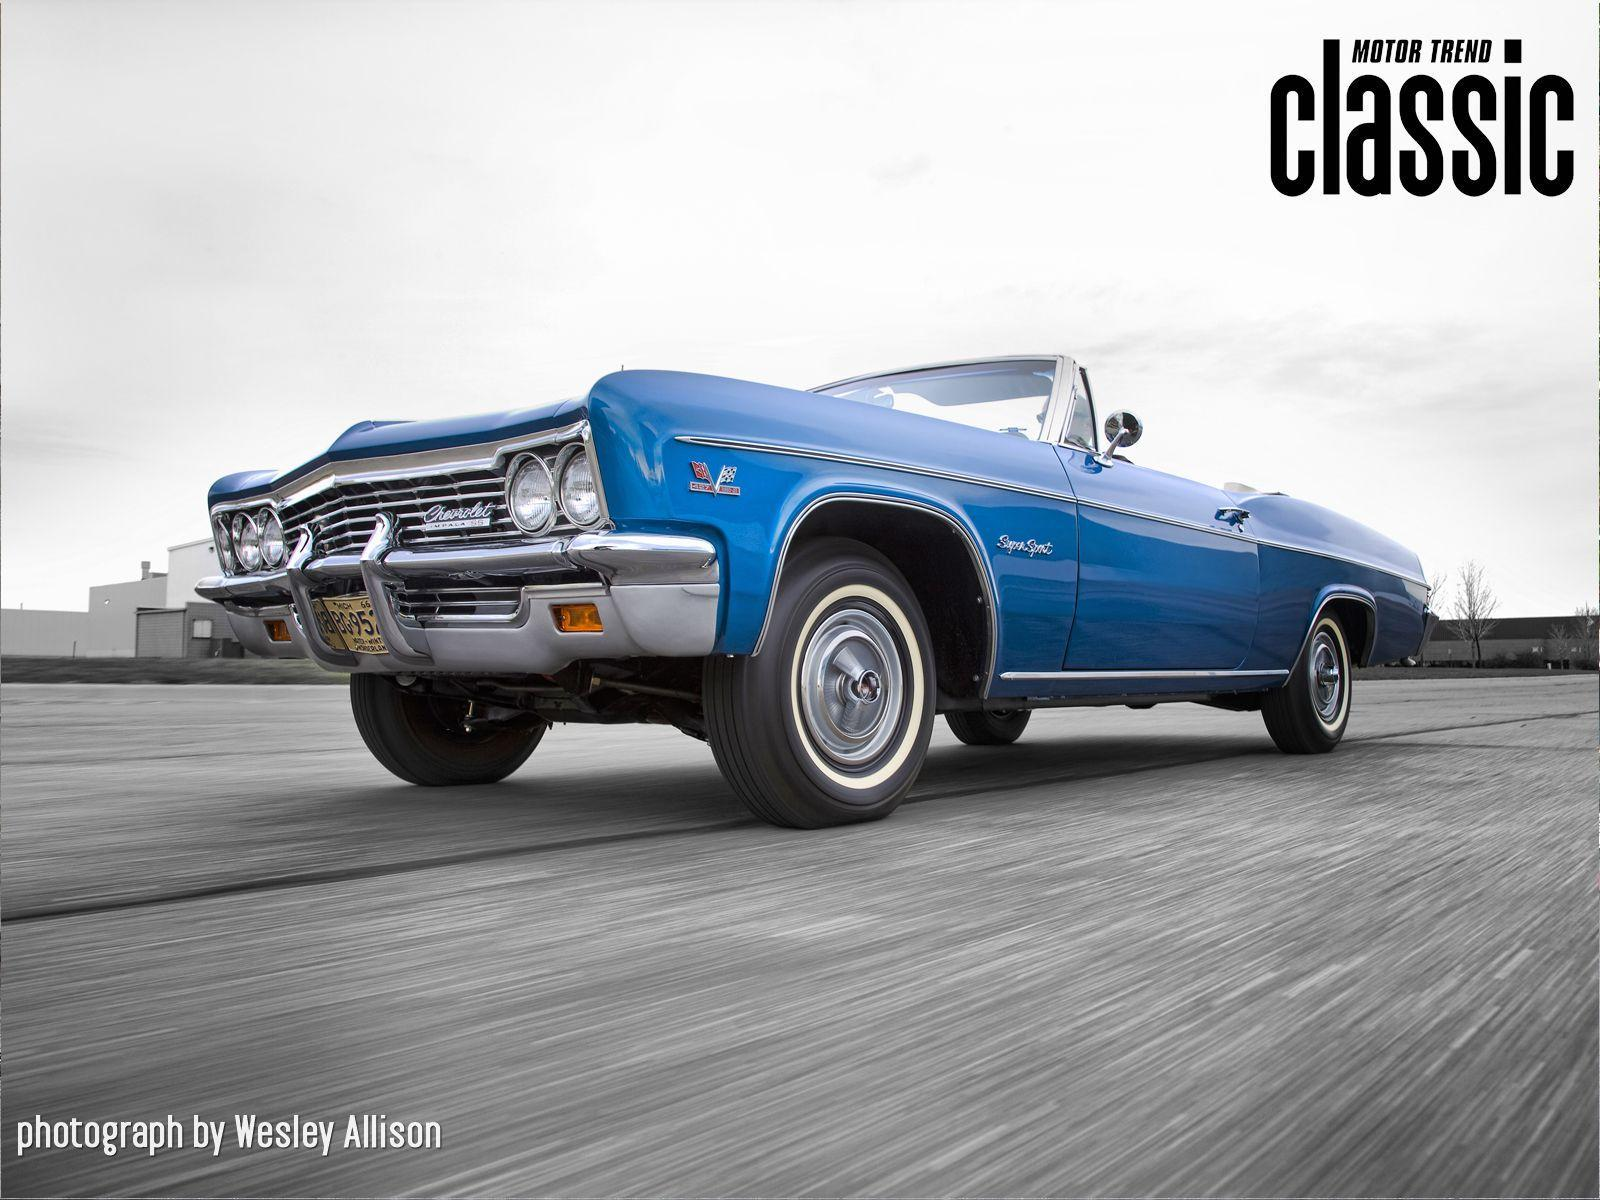 1966 Chevrolet Impala SS427 Convertible Wallpapers Gallery